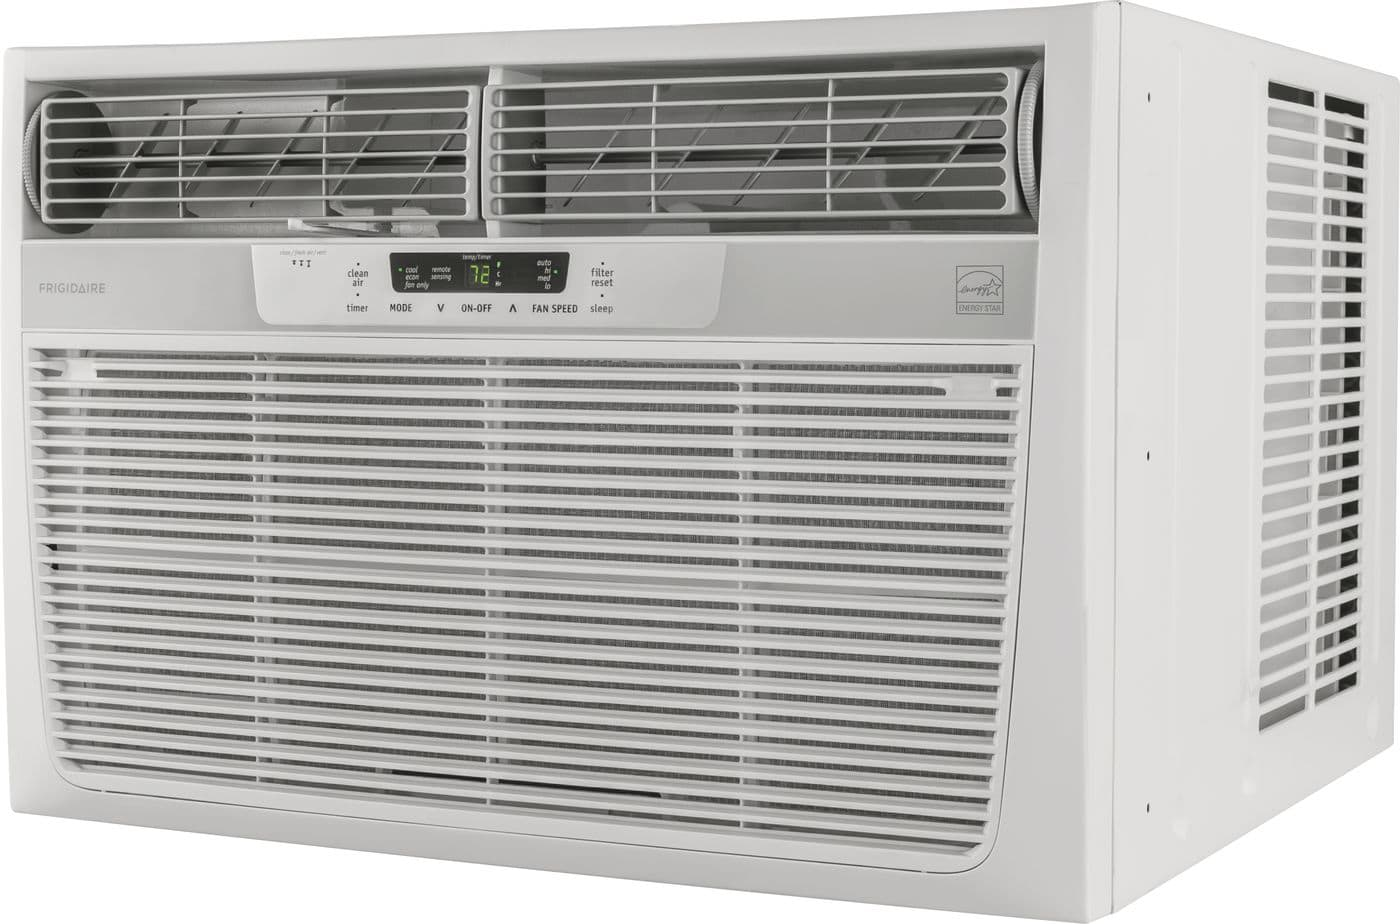 Model: FFRE2233S2 | Frigidaire 22,000 BTU Window-Mounted Room Air Conditioner